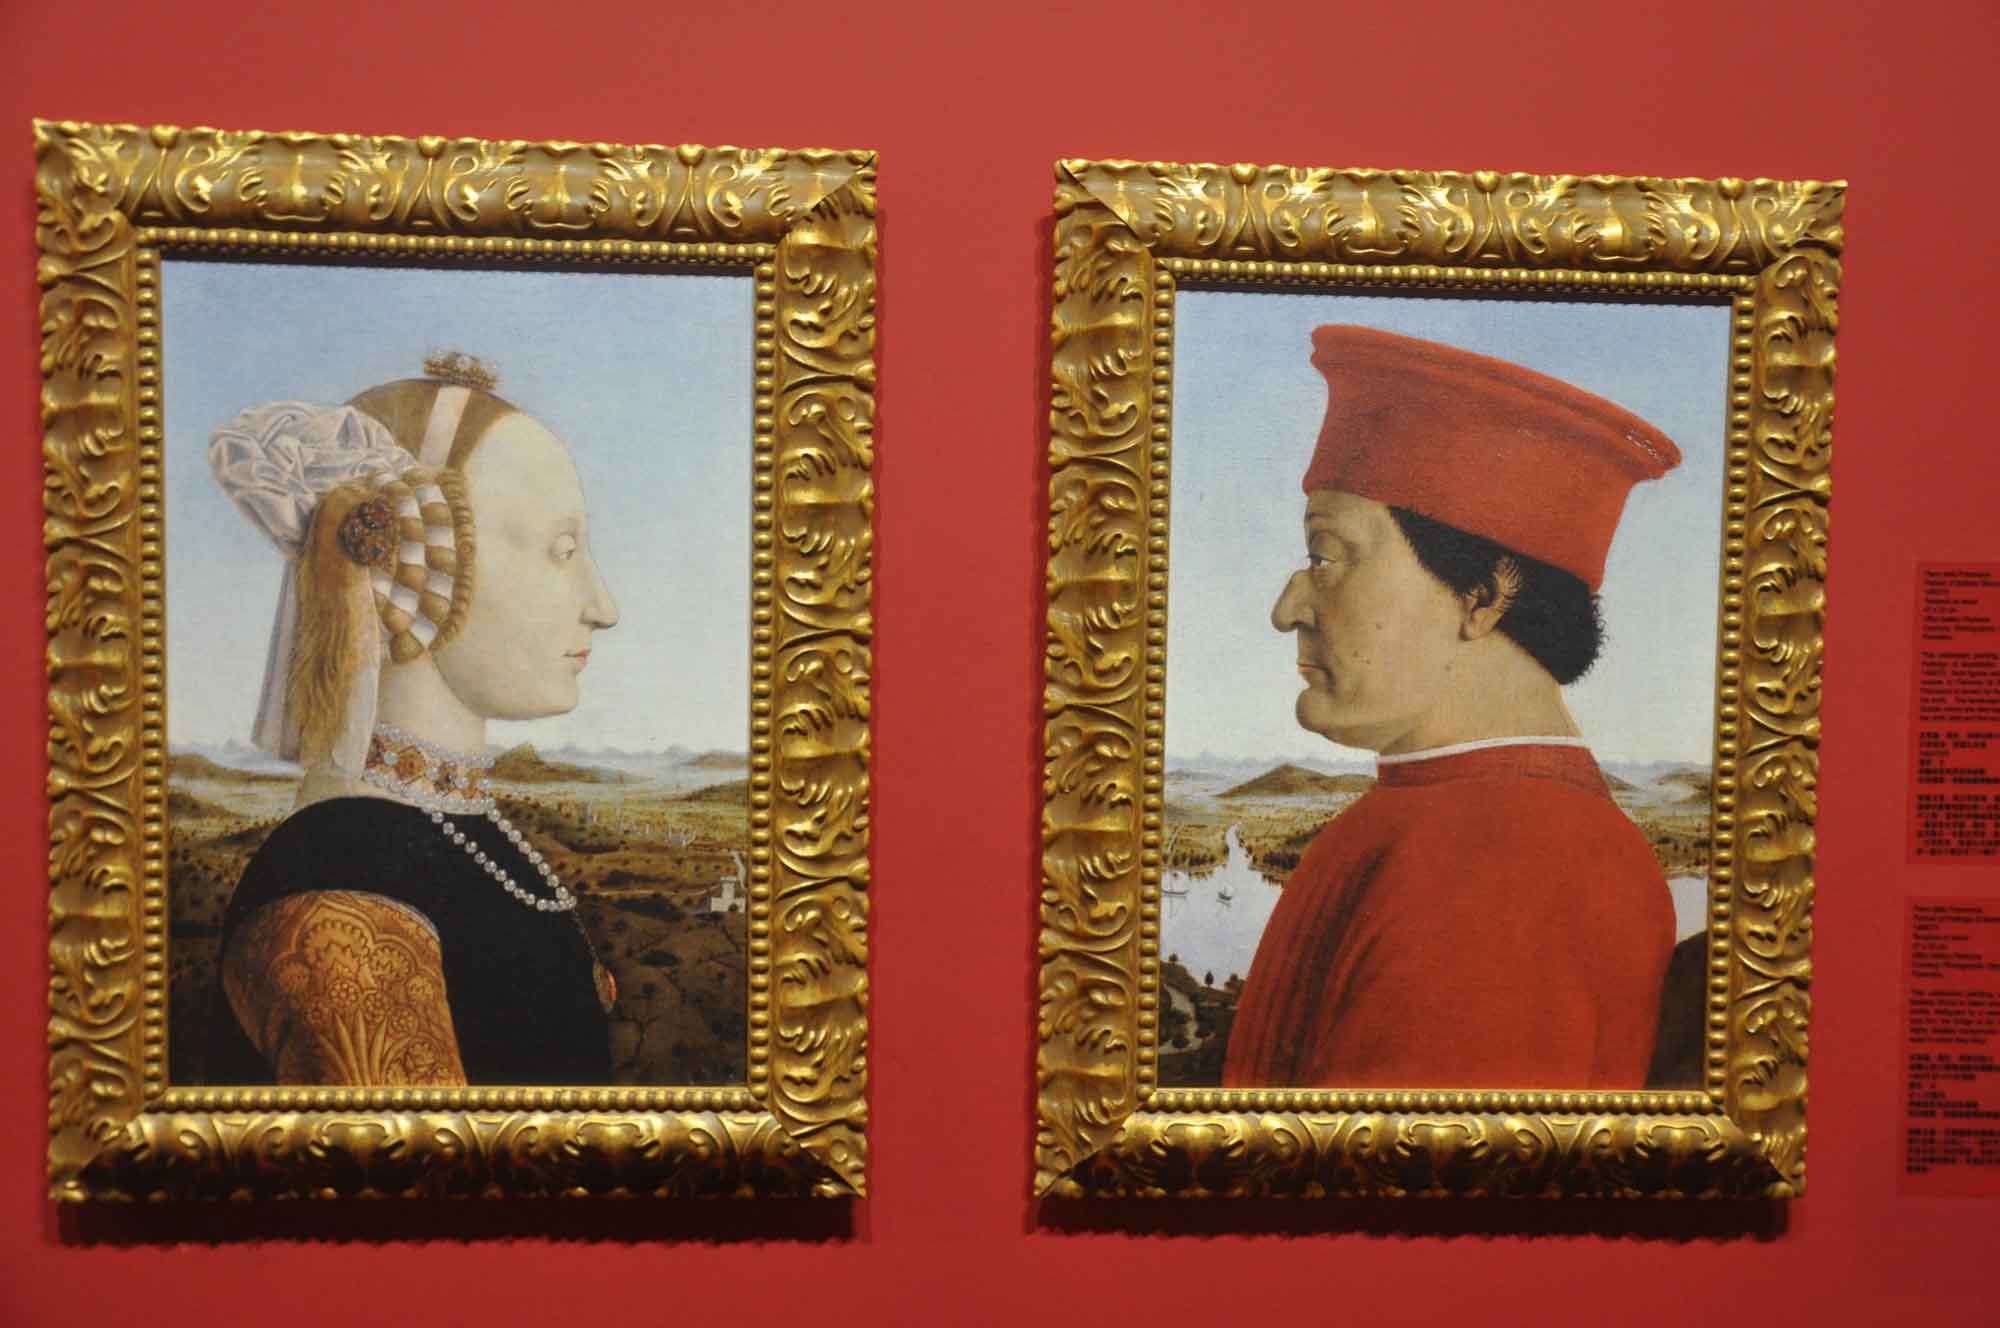 Duke and Duchess of Urbino - Piero della Francesca